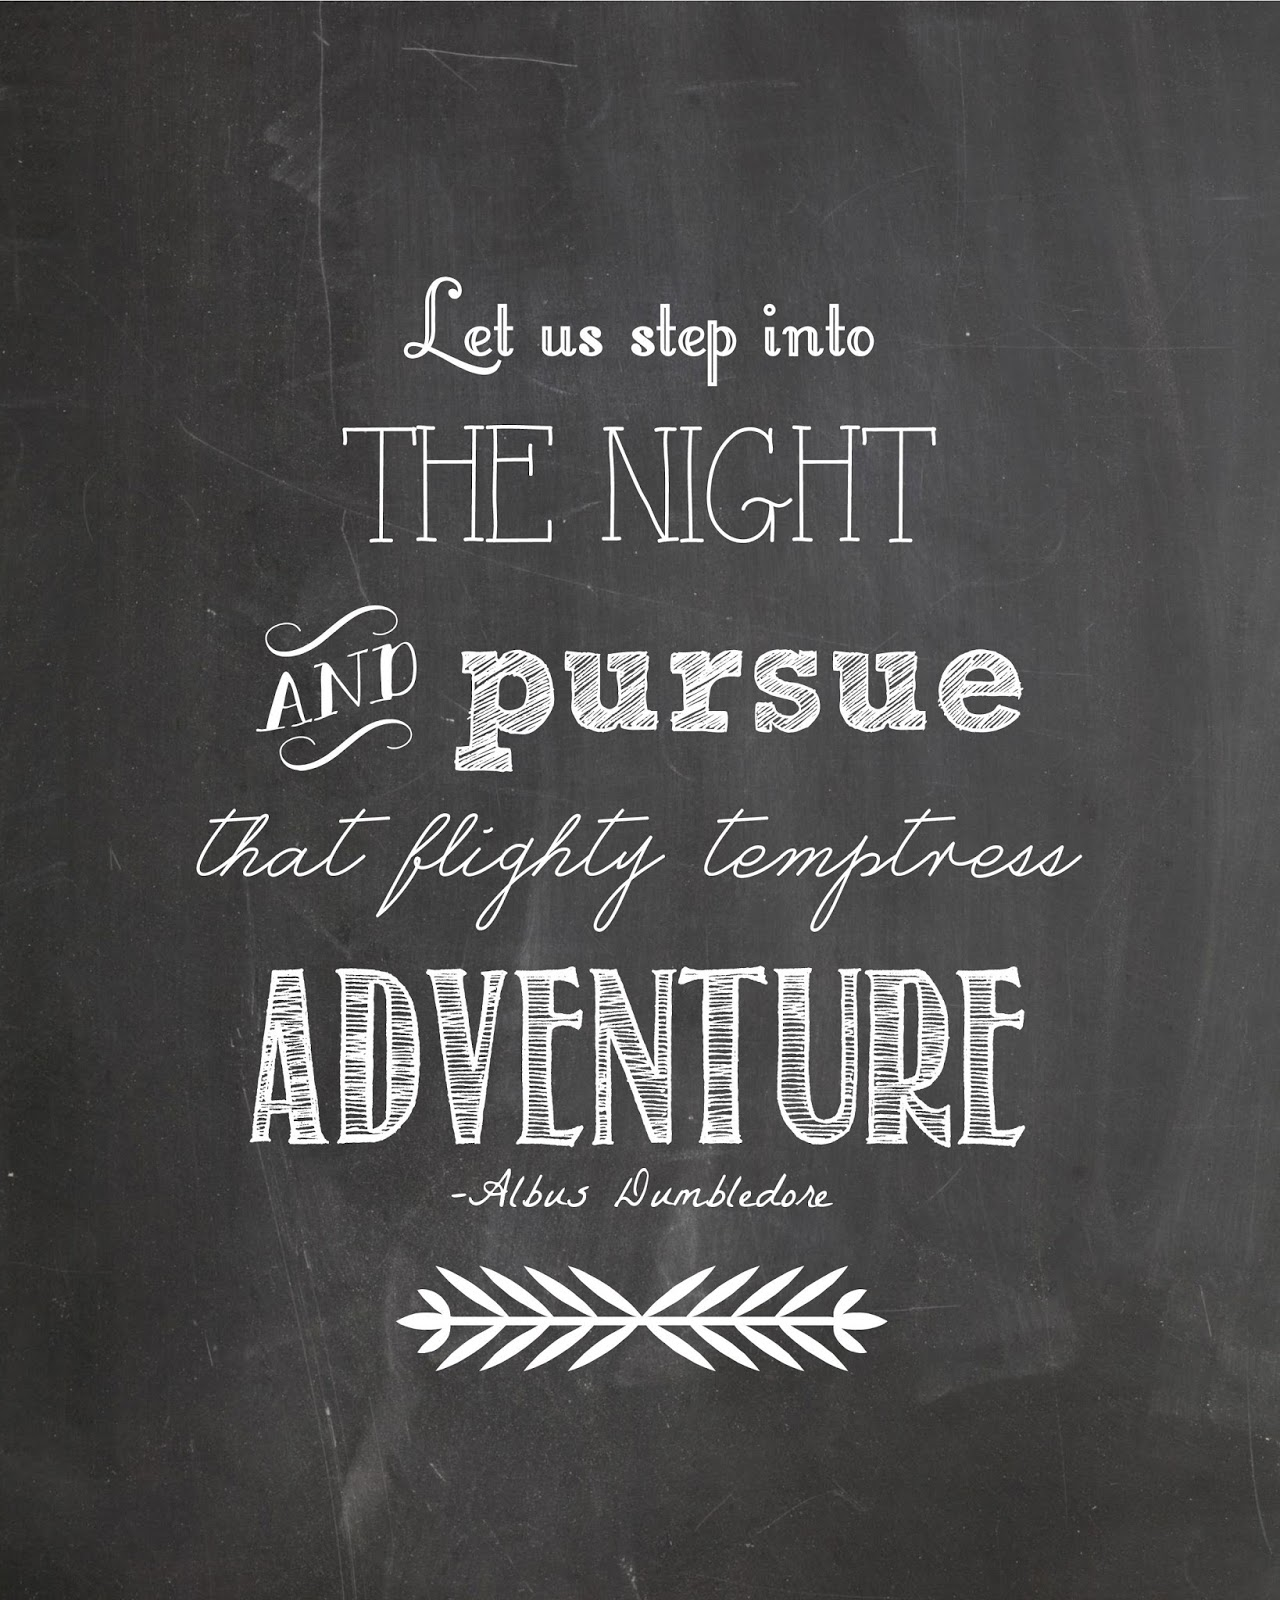 Harry Potter Inspirational Quotes: Harry Potter Quotes And Sayings. QuotesGram